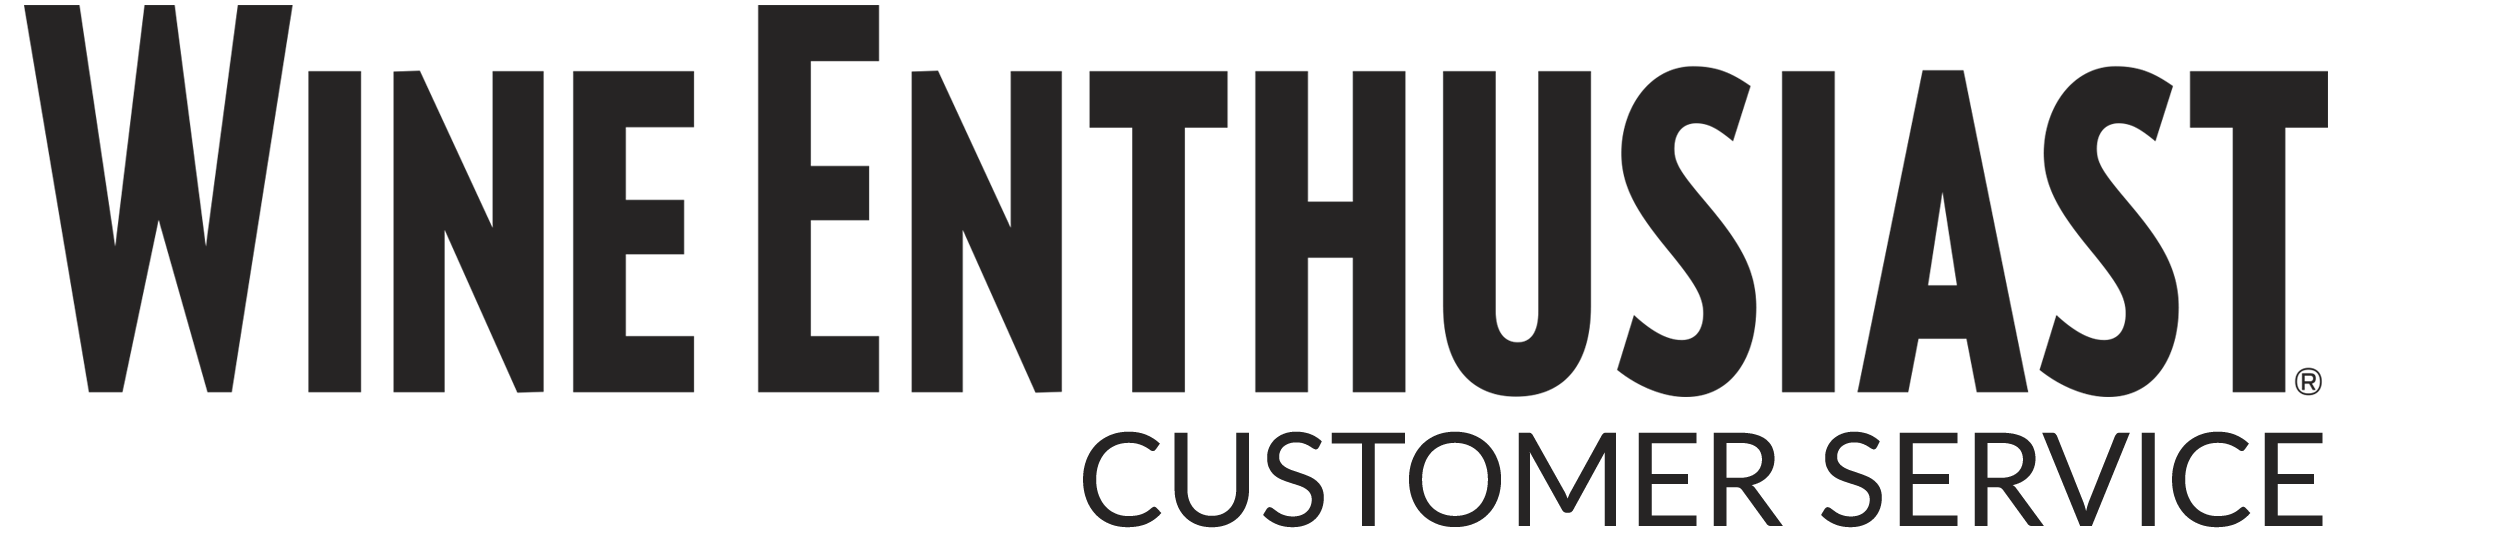 Banner Logo - Wine Enthusiast Customer Service